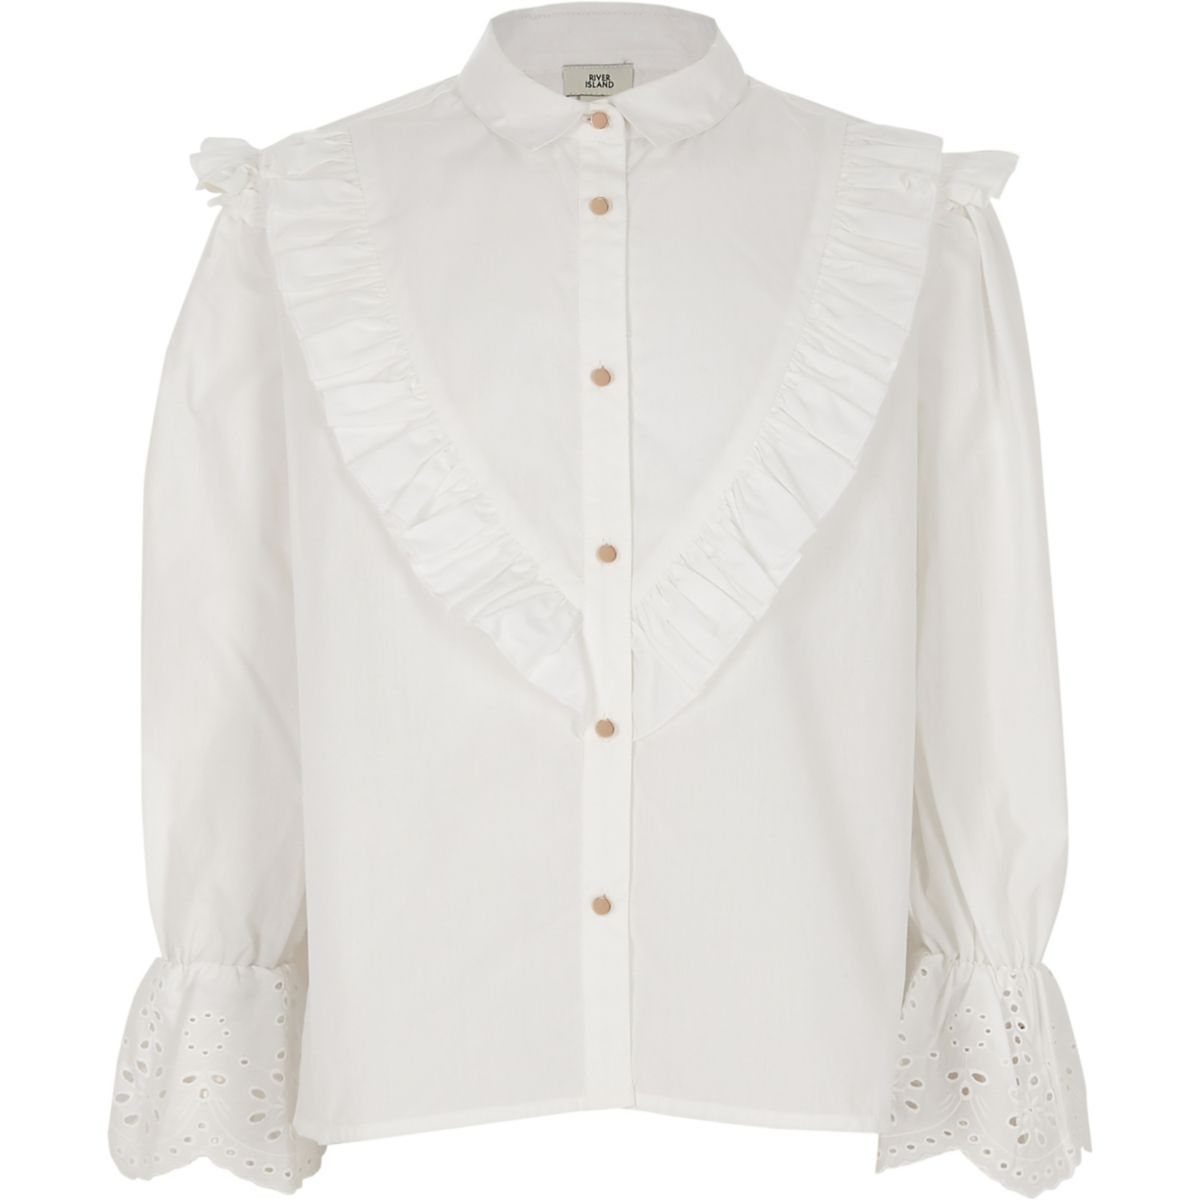 Girls white poplin embroidered sleeve shirt